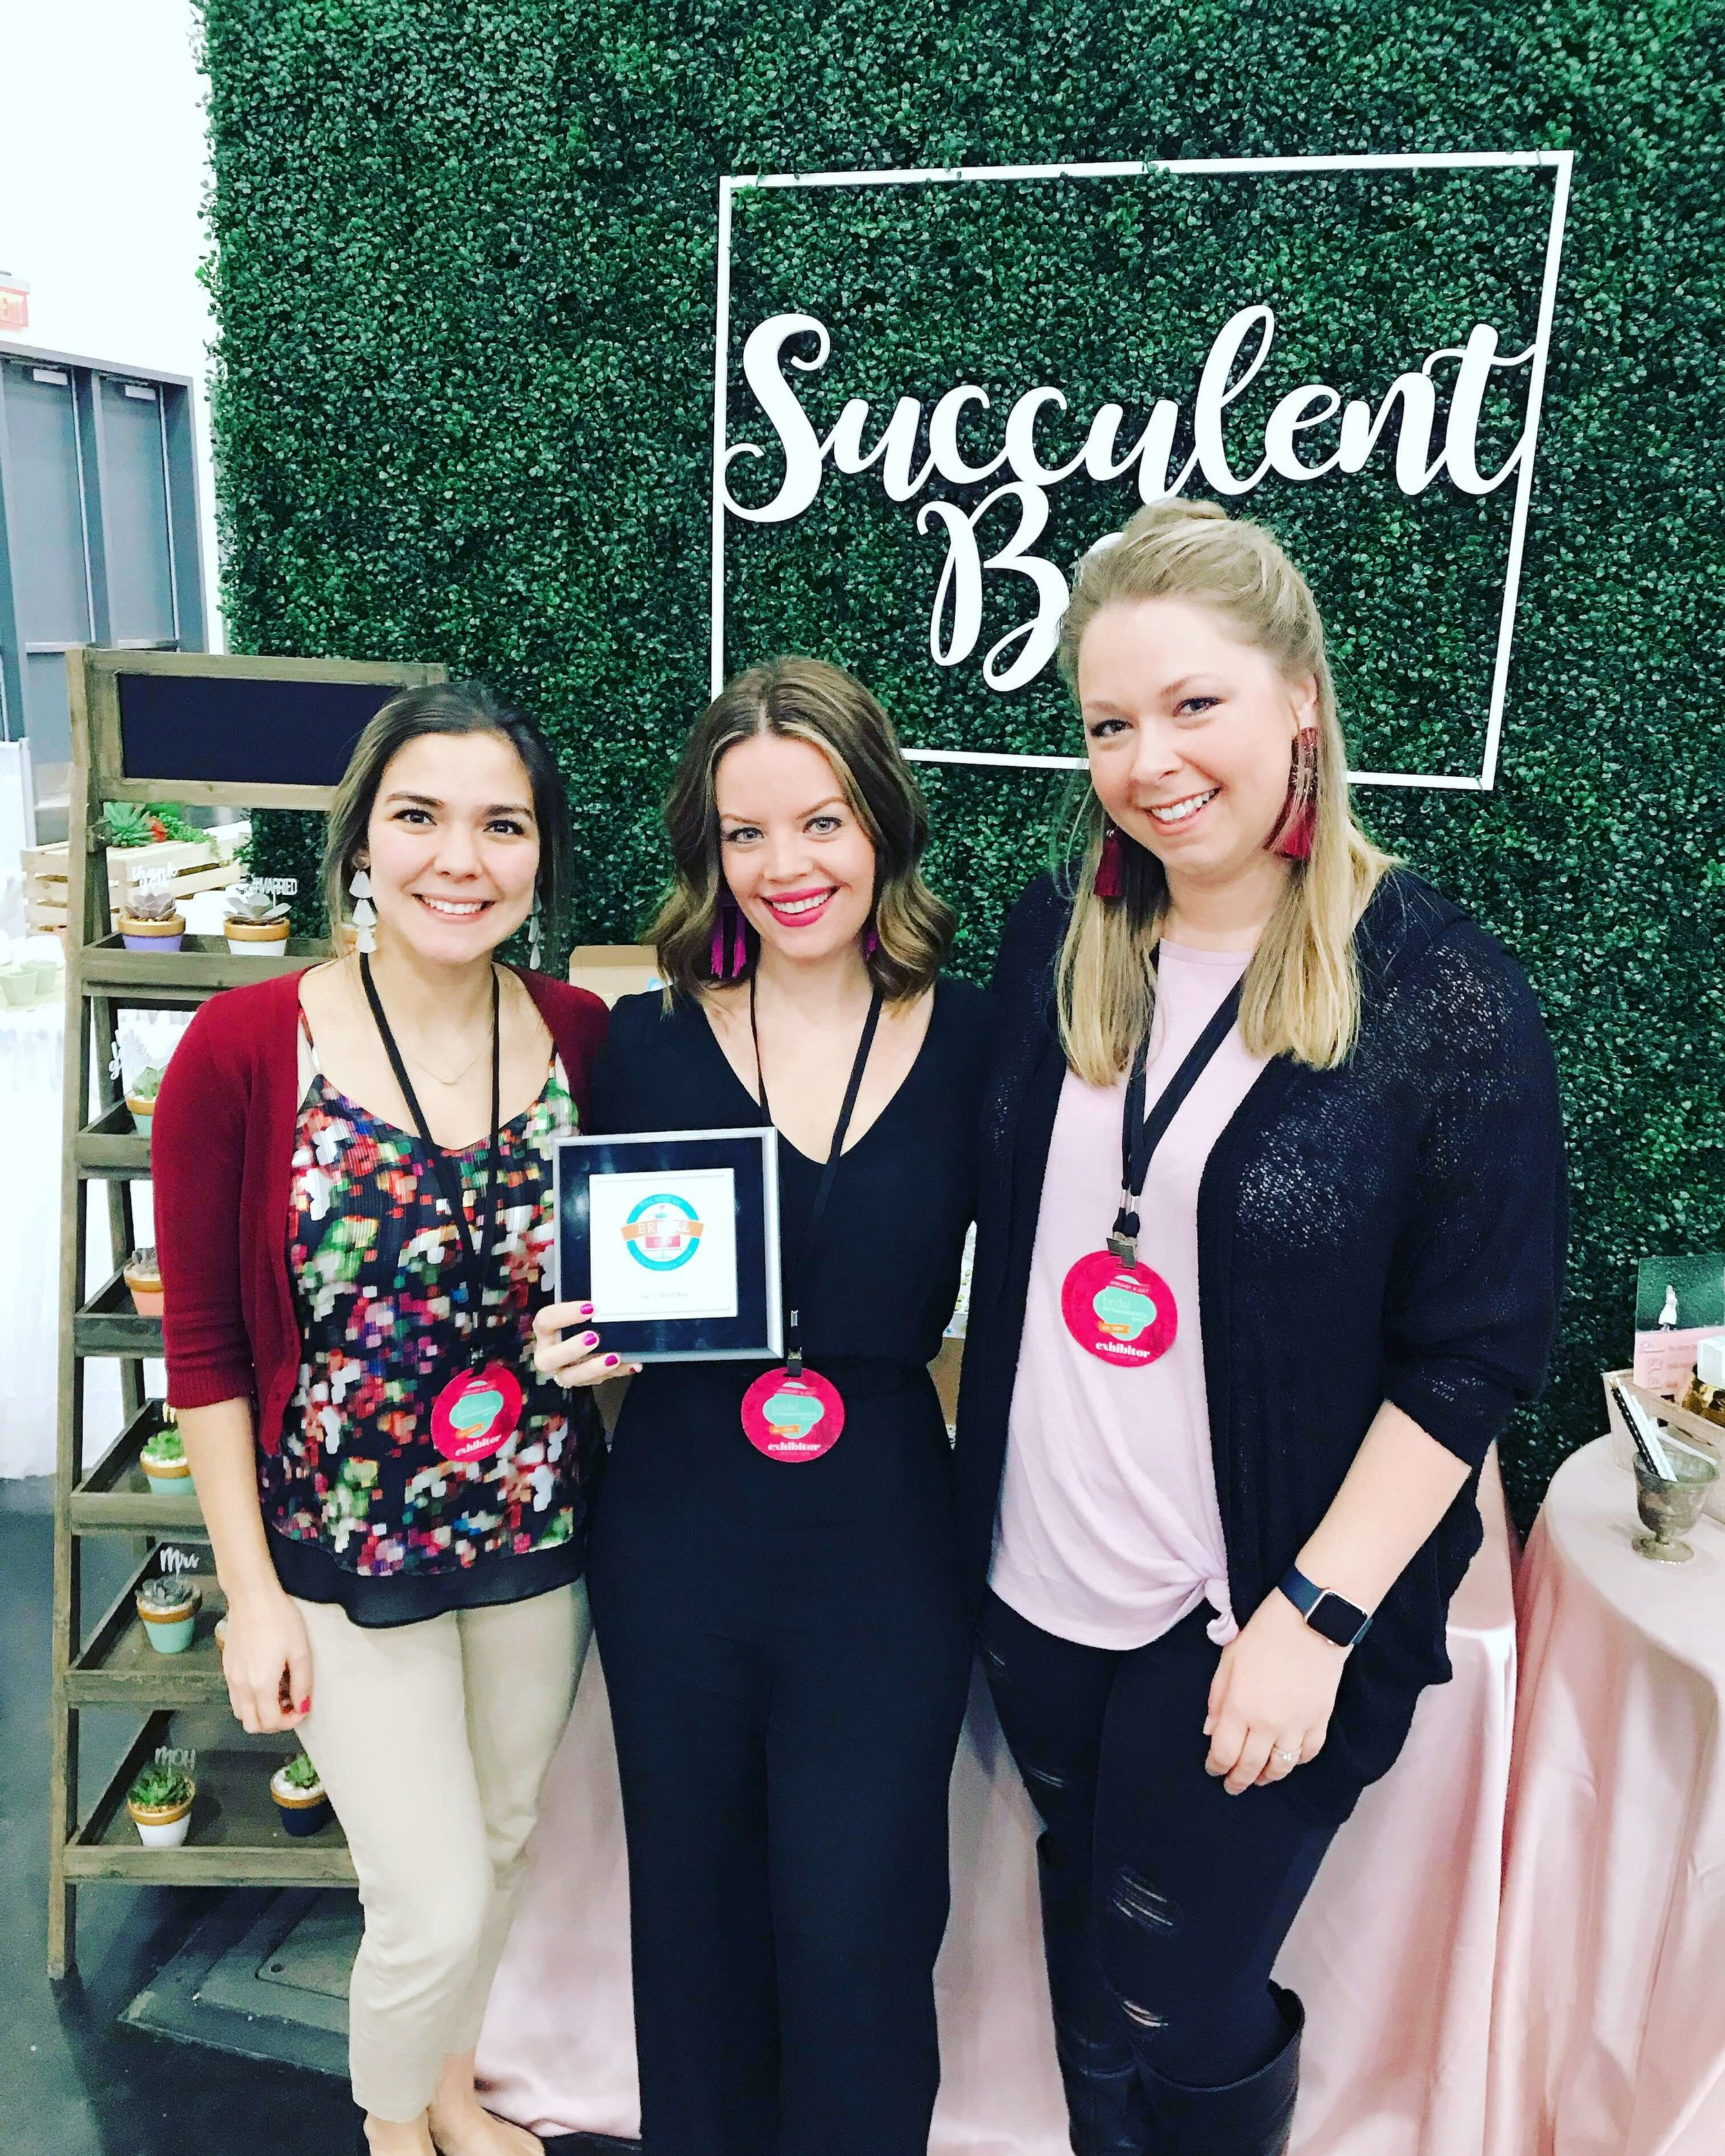 Owner, Jessica Siefert (center) accepting the Best of Bridal